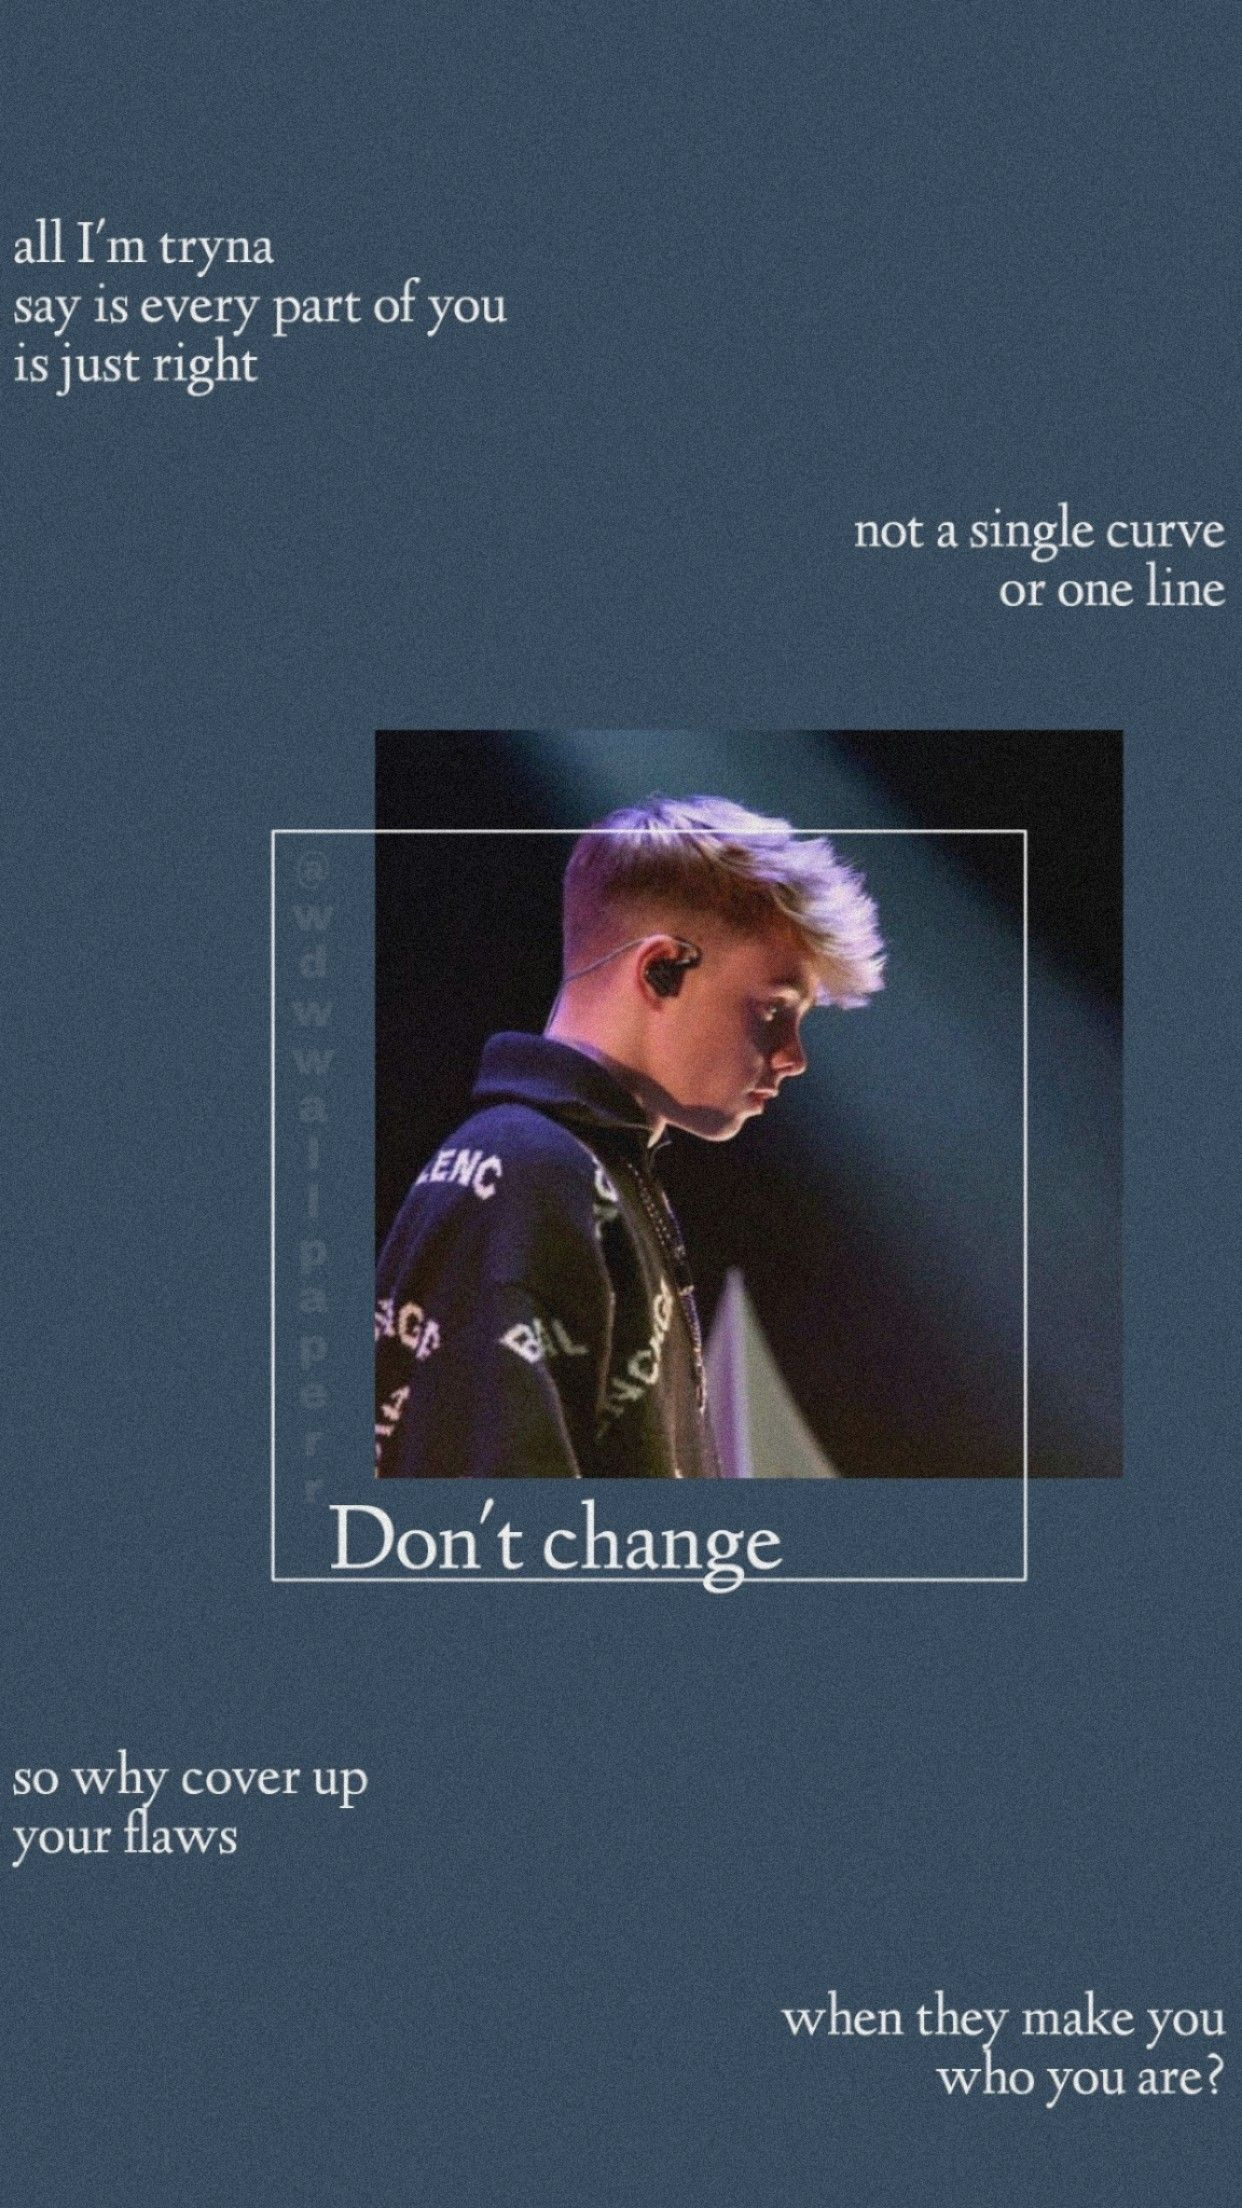 Corbyn Besson wallpaper Why don't we wallpaper Don't